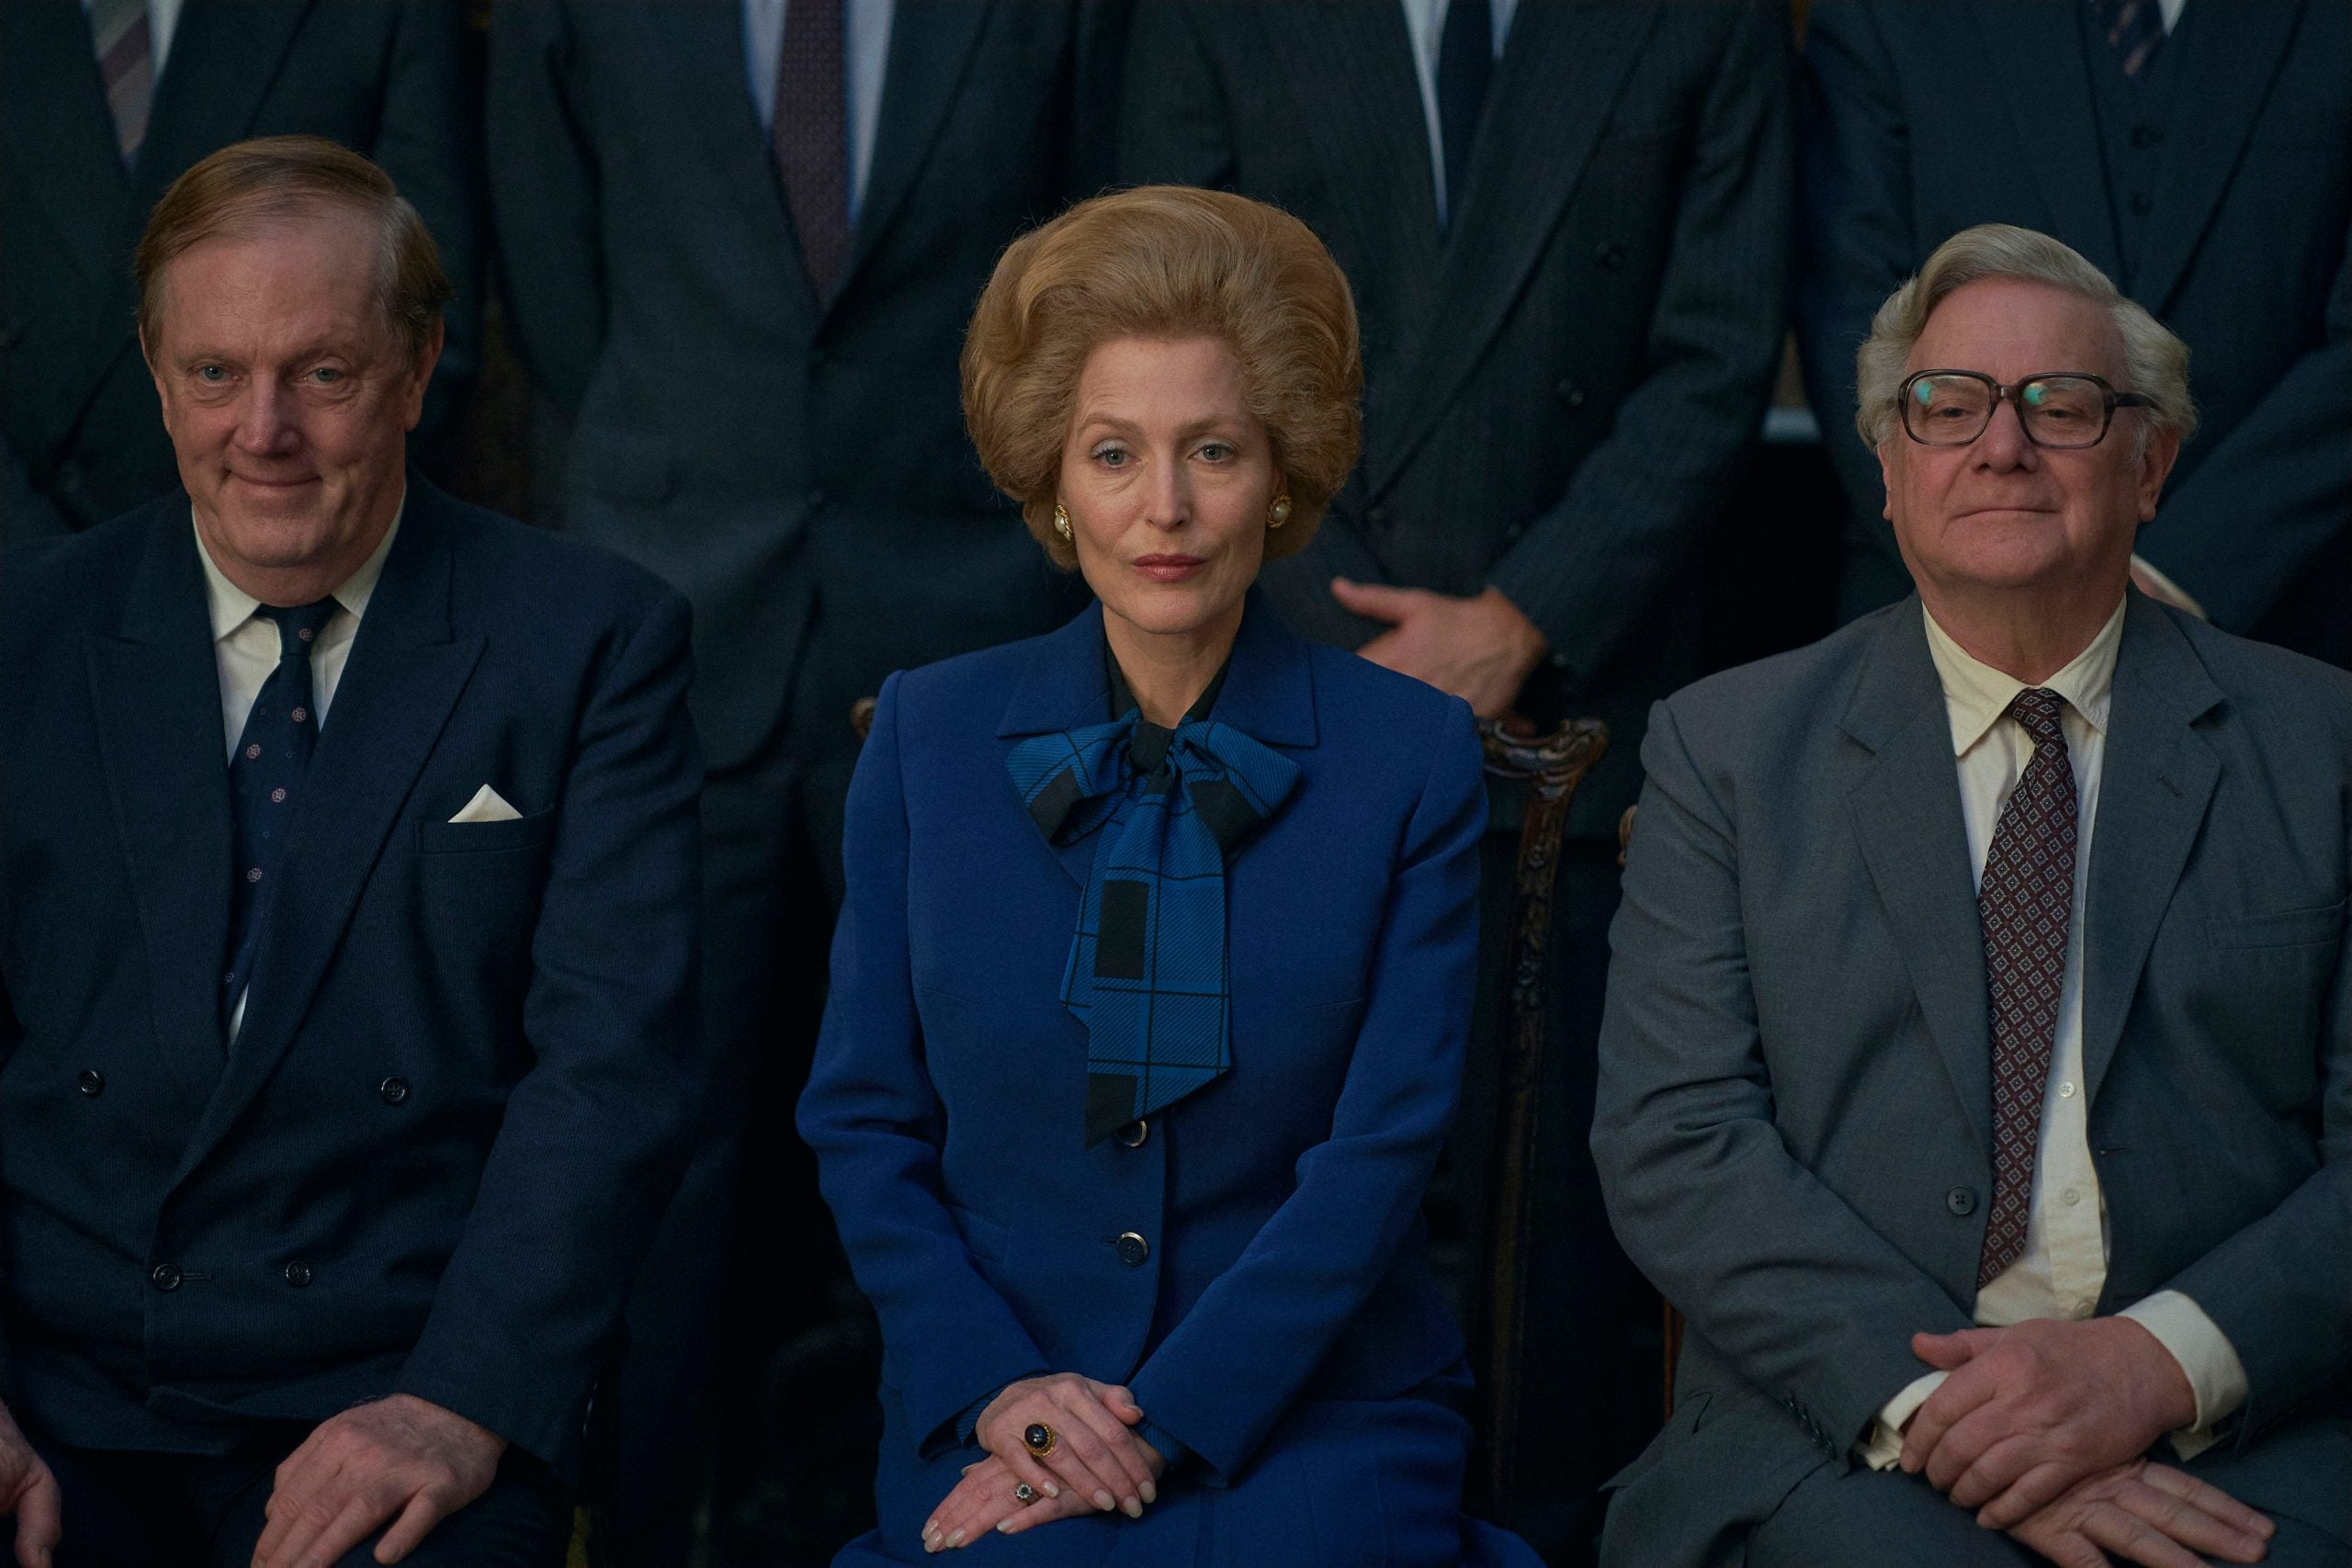 The Crown has been accused of inaccuracy – not least by those who were there